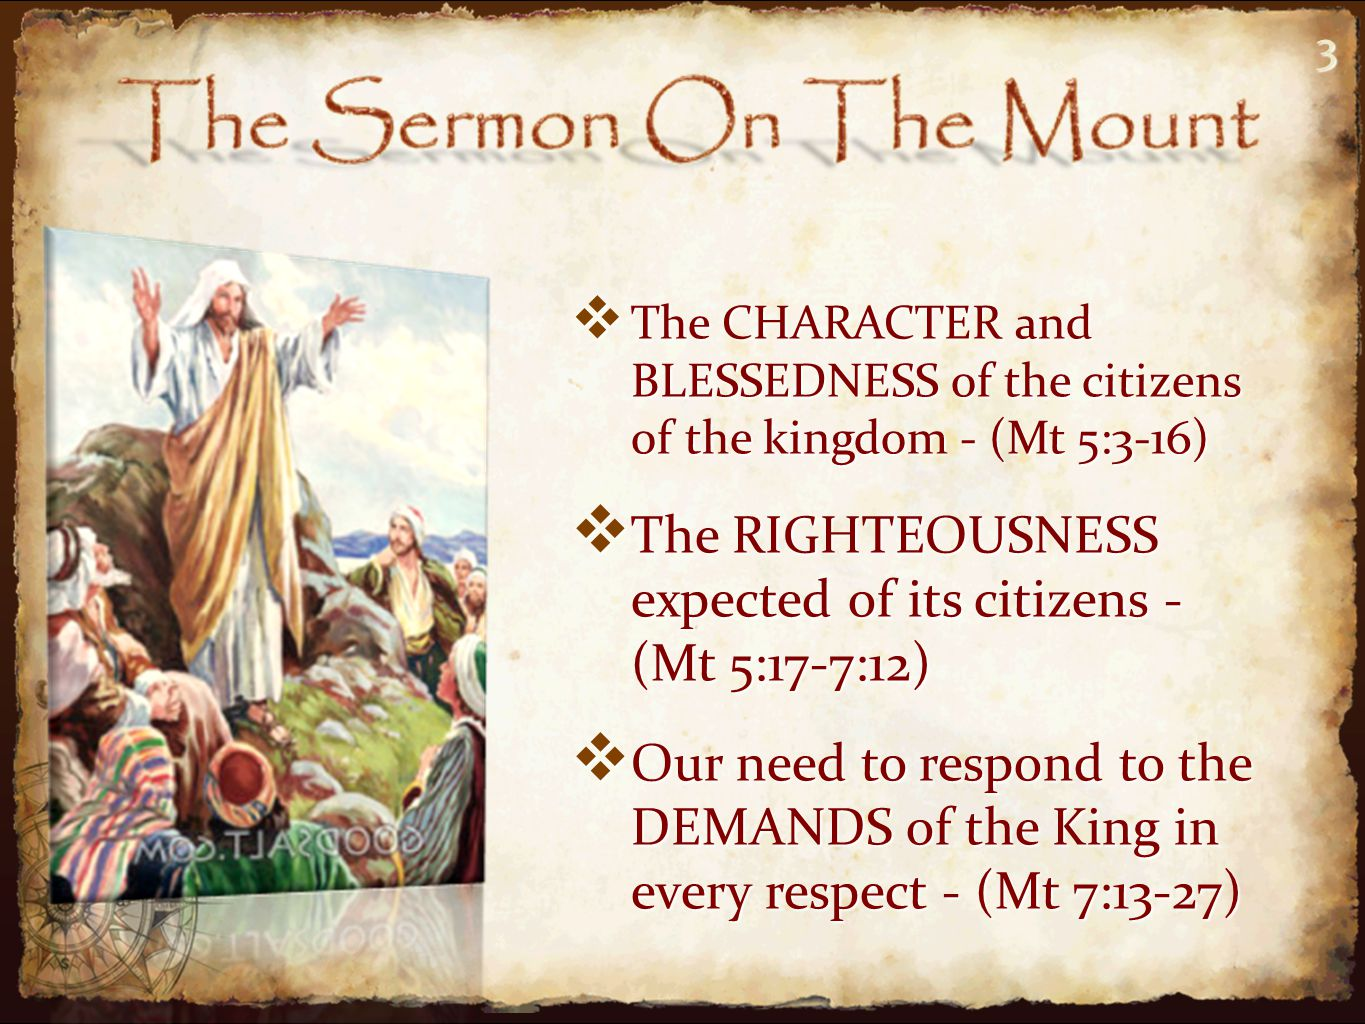 3 TTTThe CHARACTER and BLESSEDNESS of the citizens of the kingdom - (Mt 5:3-16) TTTThe RIGHTEOUSNESS expected of its citizens - (Mt 5:17-7:12) OOOOur need to respond to the DEMANDS of the King in every respect - (Mt 7:13-27) 3